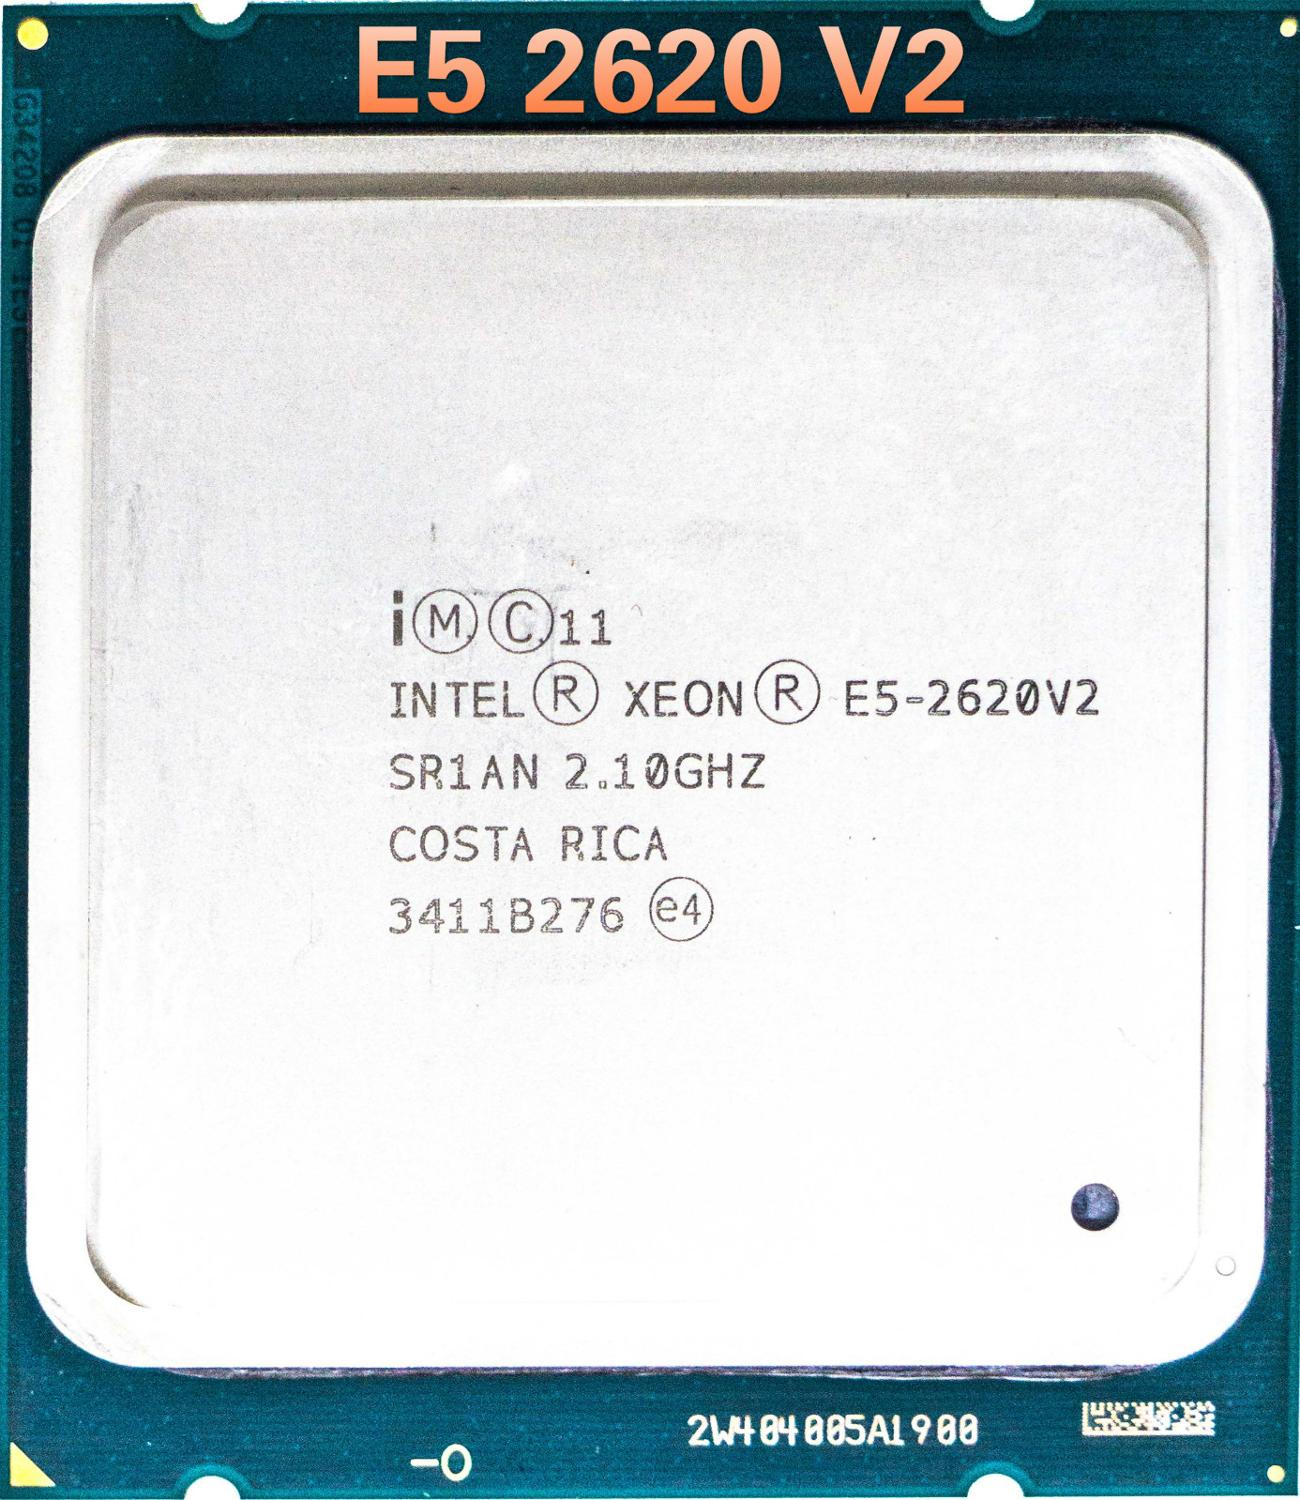 Intel Xeon E5 2620 V2 E5-2620V2 Processor SR1AN 6 Core 2.1GHz 15M 80W Server CPU